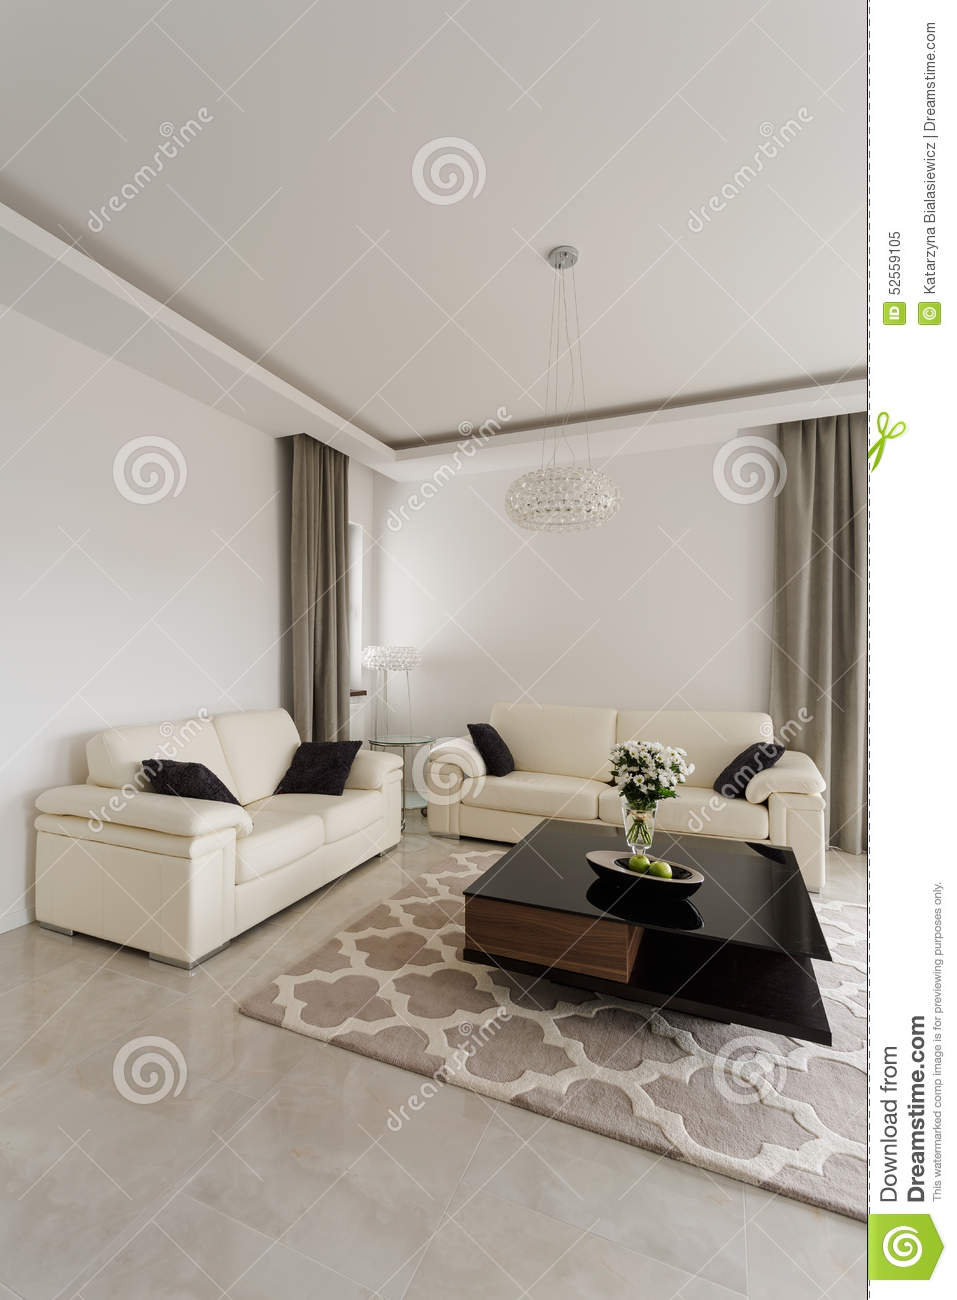 Sitting room in luxury style stock photo image 52559105 - Interior sitting rooms ...